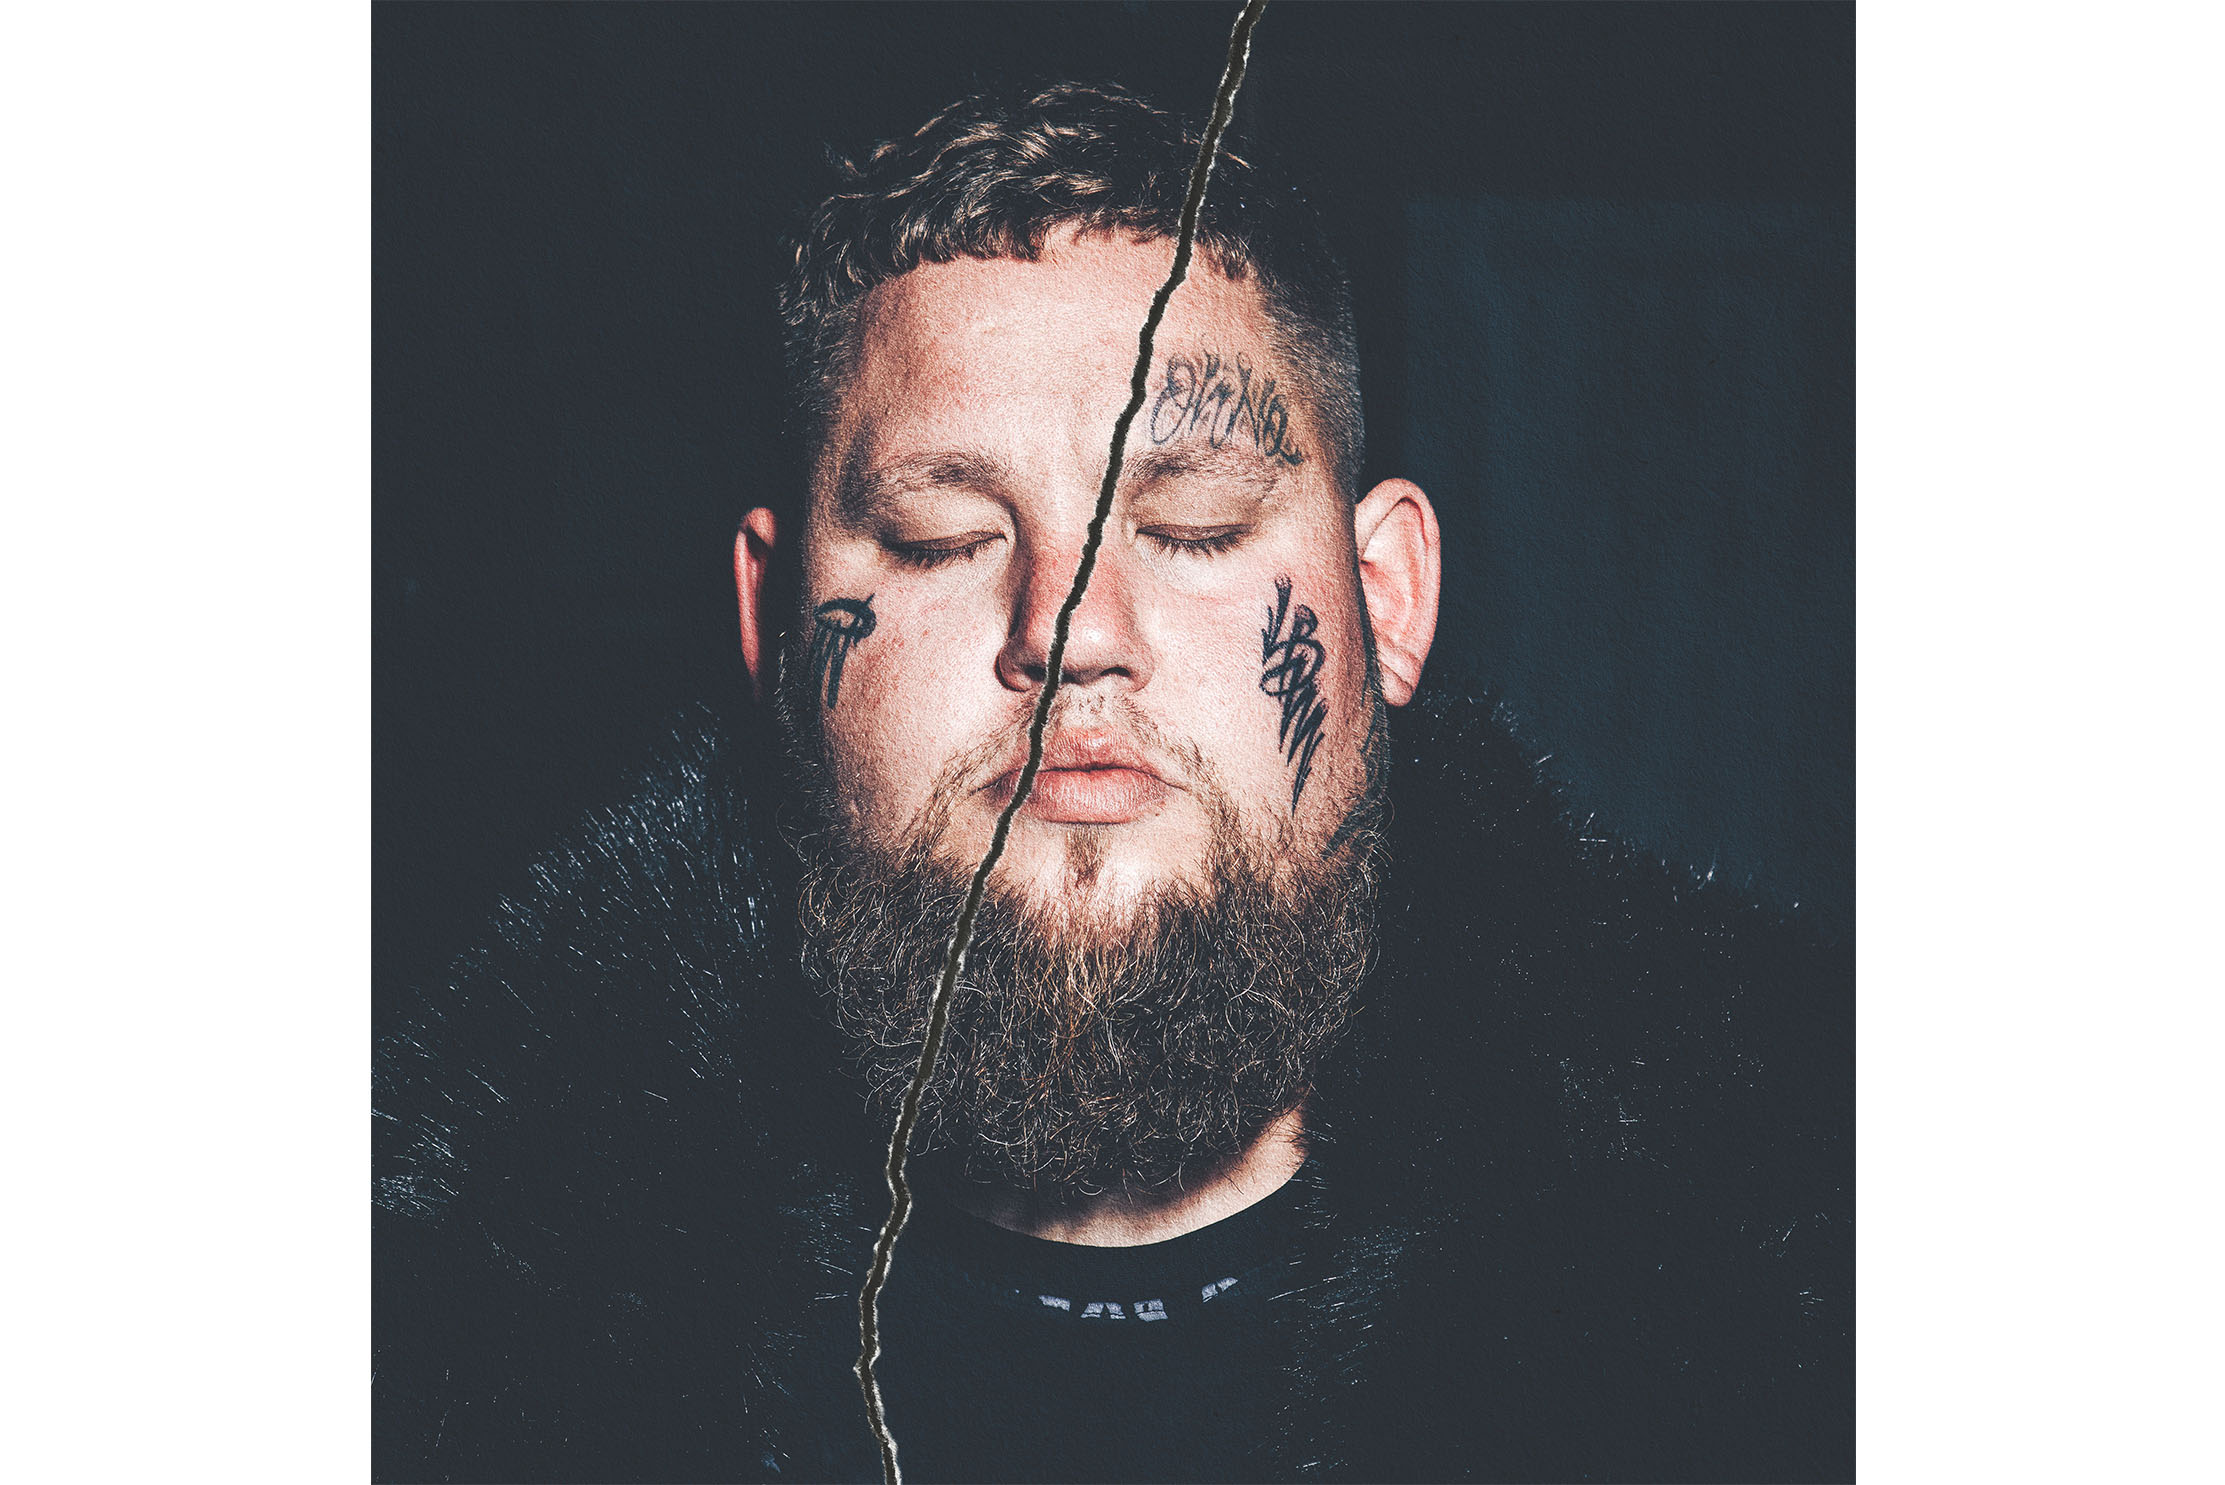 Returning for 2021, Rag'n'Bone Man's second album, Life By Misadventure is released on Fri 23 April, with it's first single, All You Ever Wanted, available now